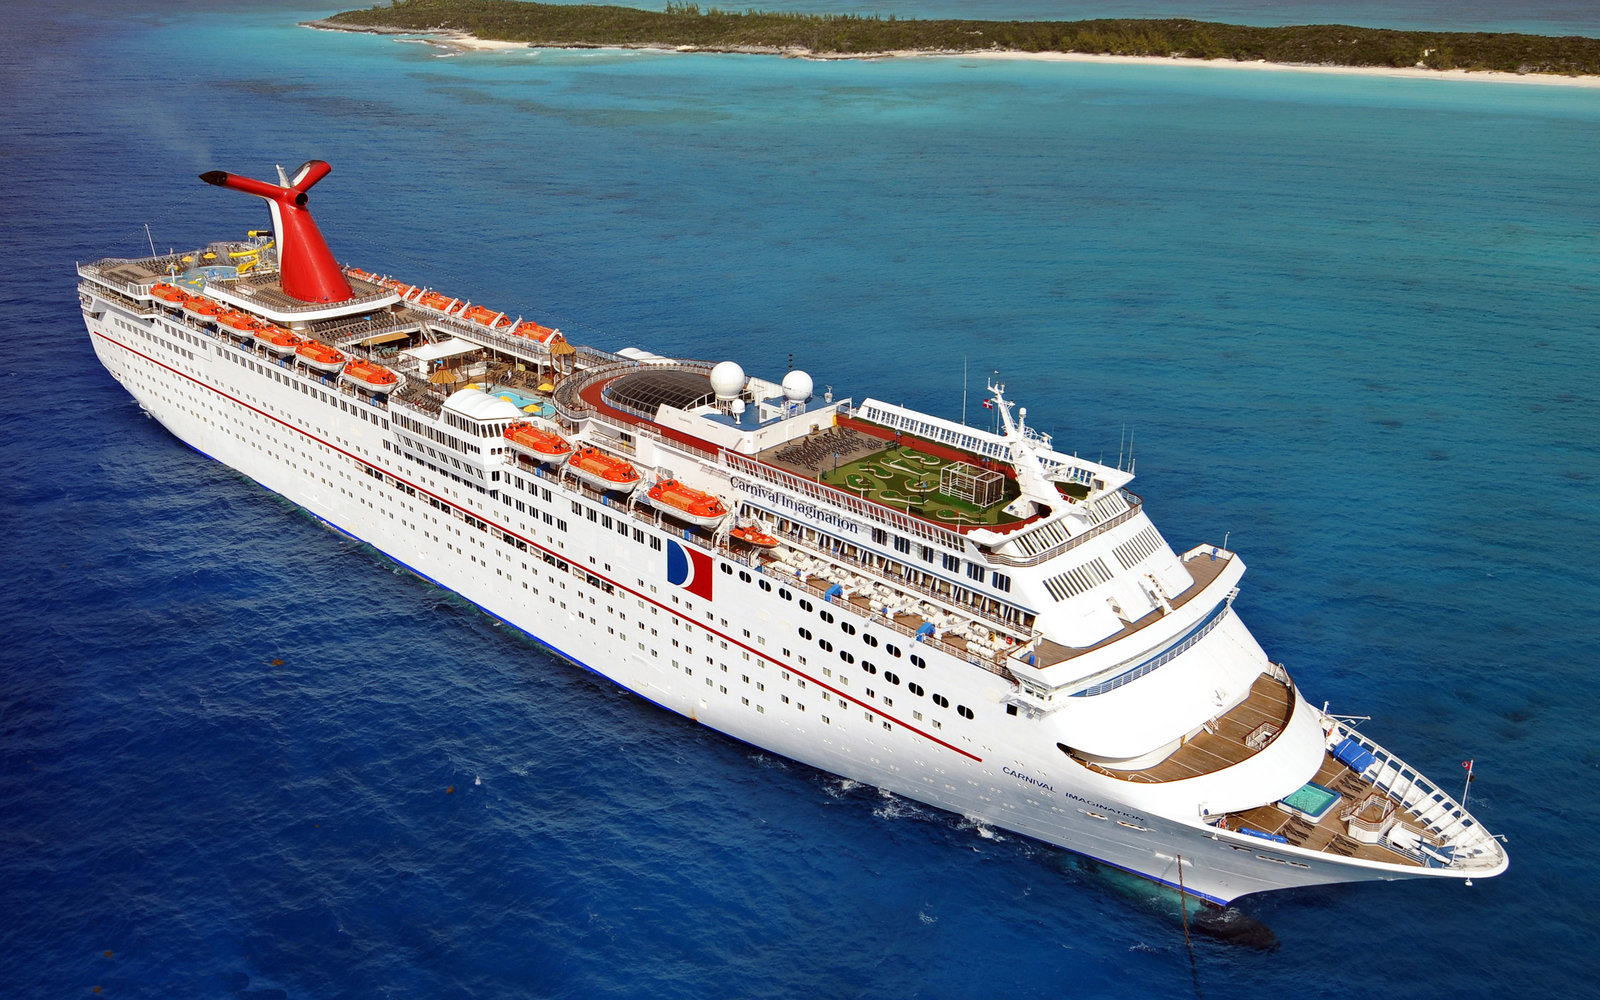 3. Carnival Cruise Line